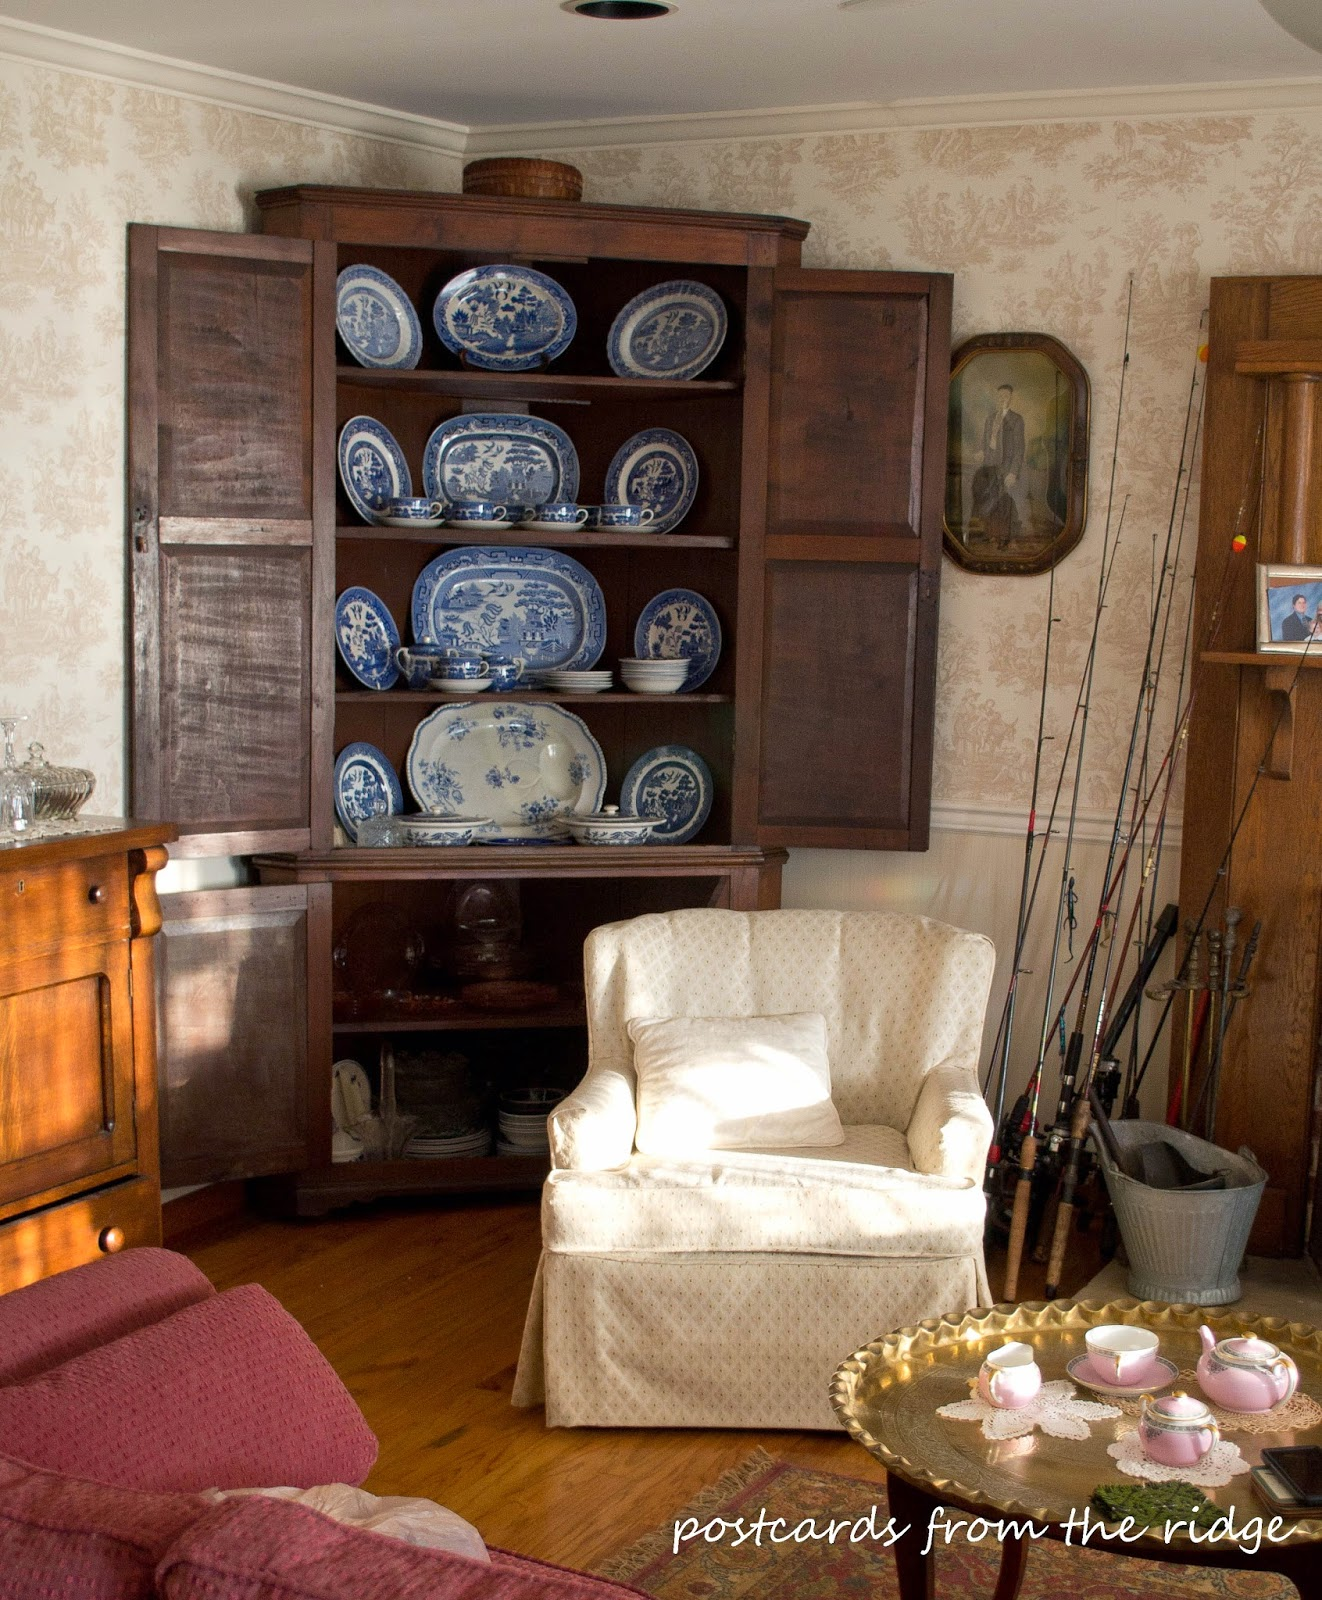 Love the blue and white dishes in the antique corner cabinet.